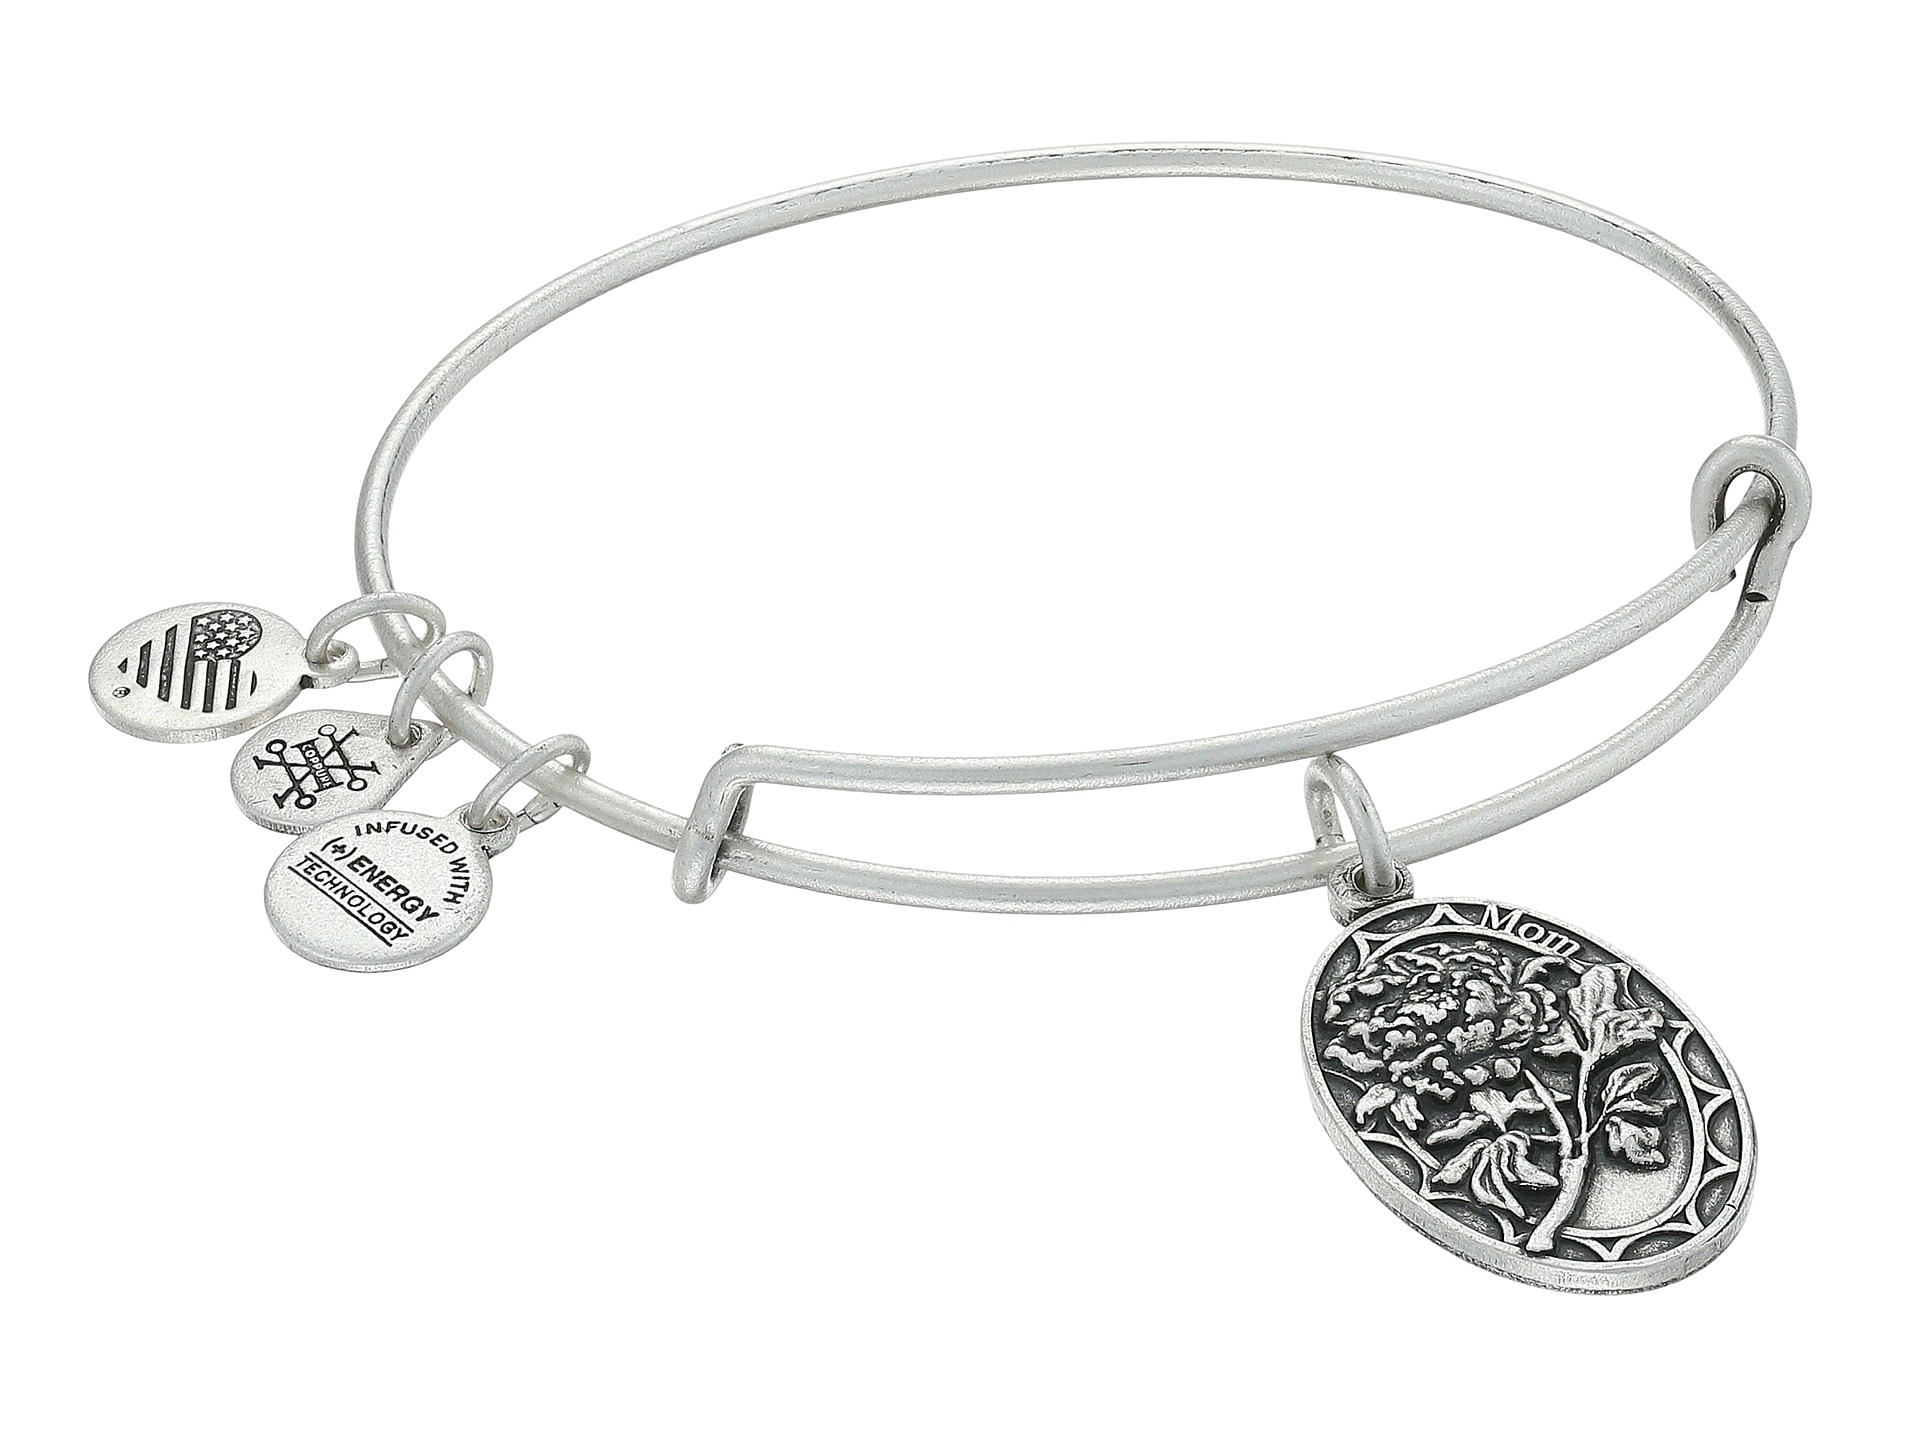 Baby alex and ani bracelets Just another WordPress site